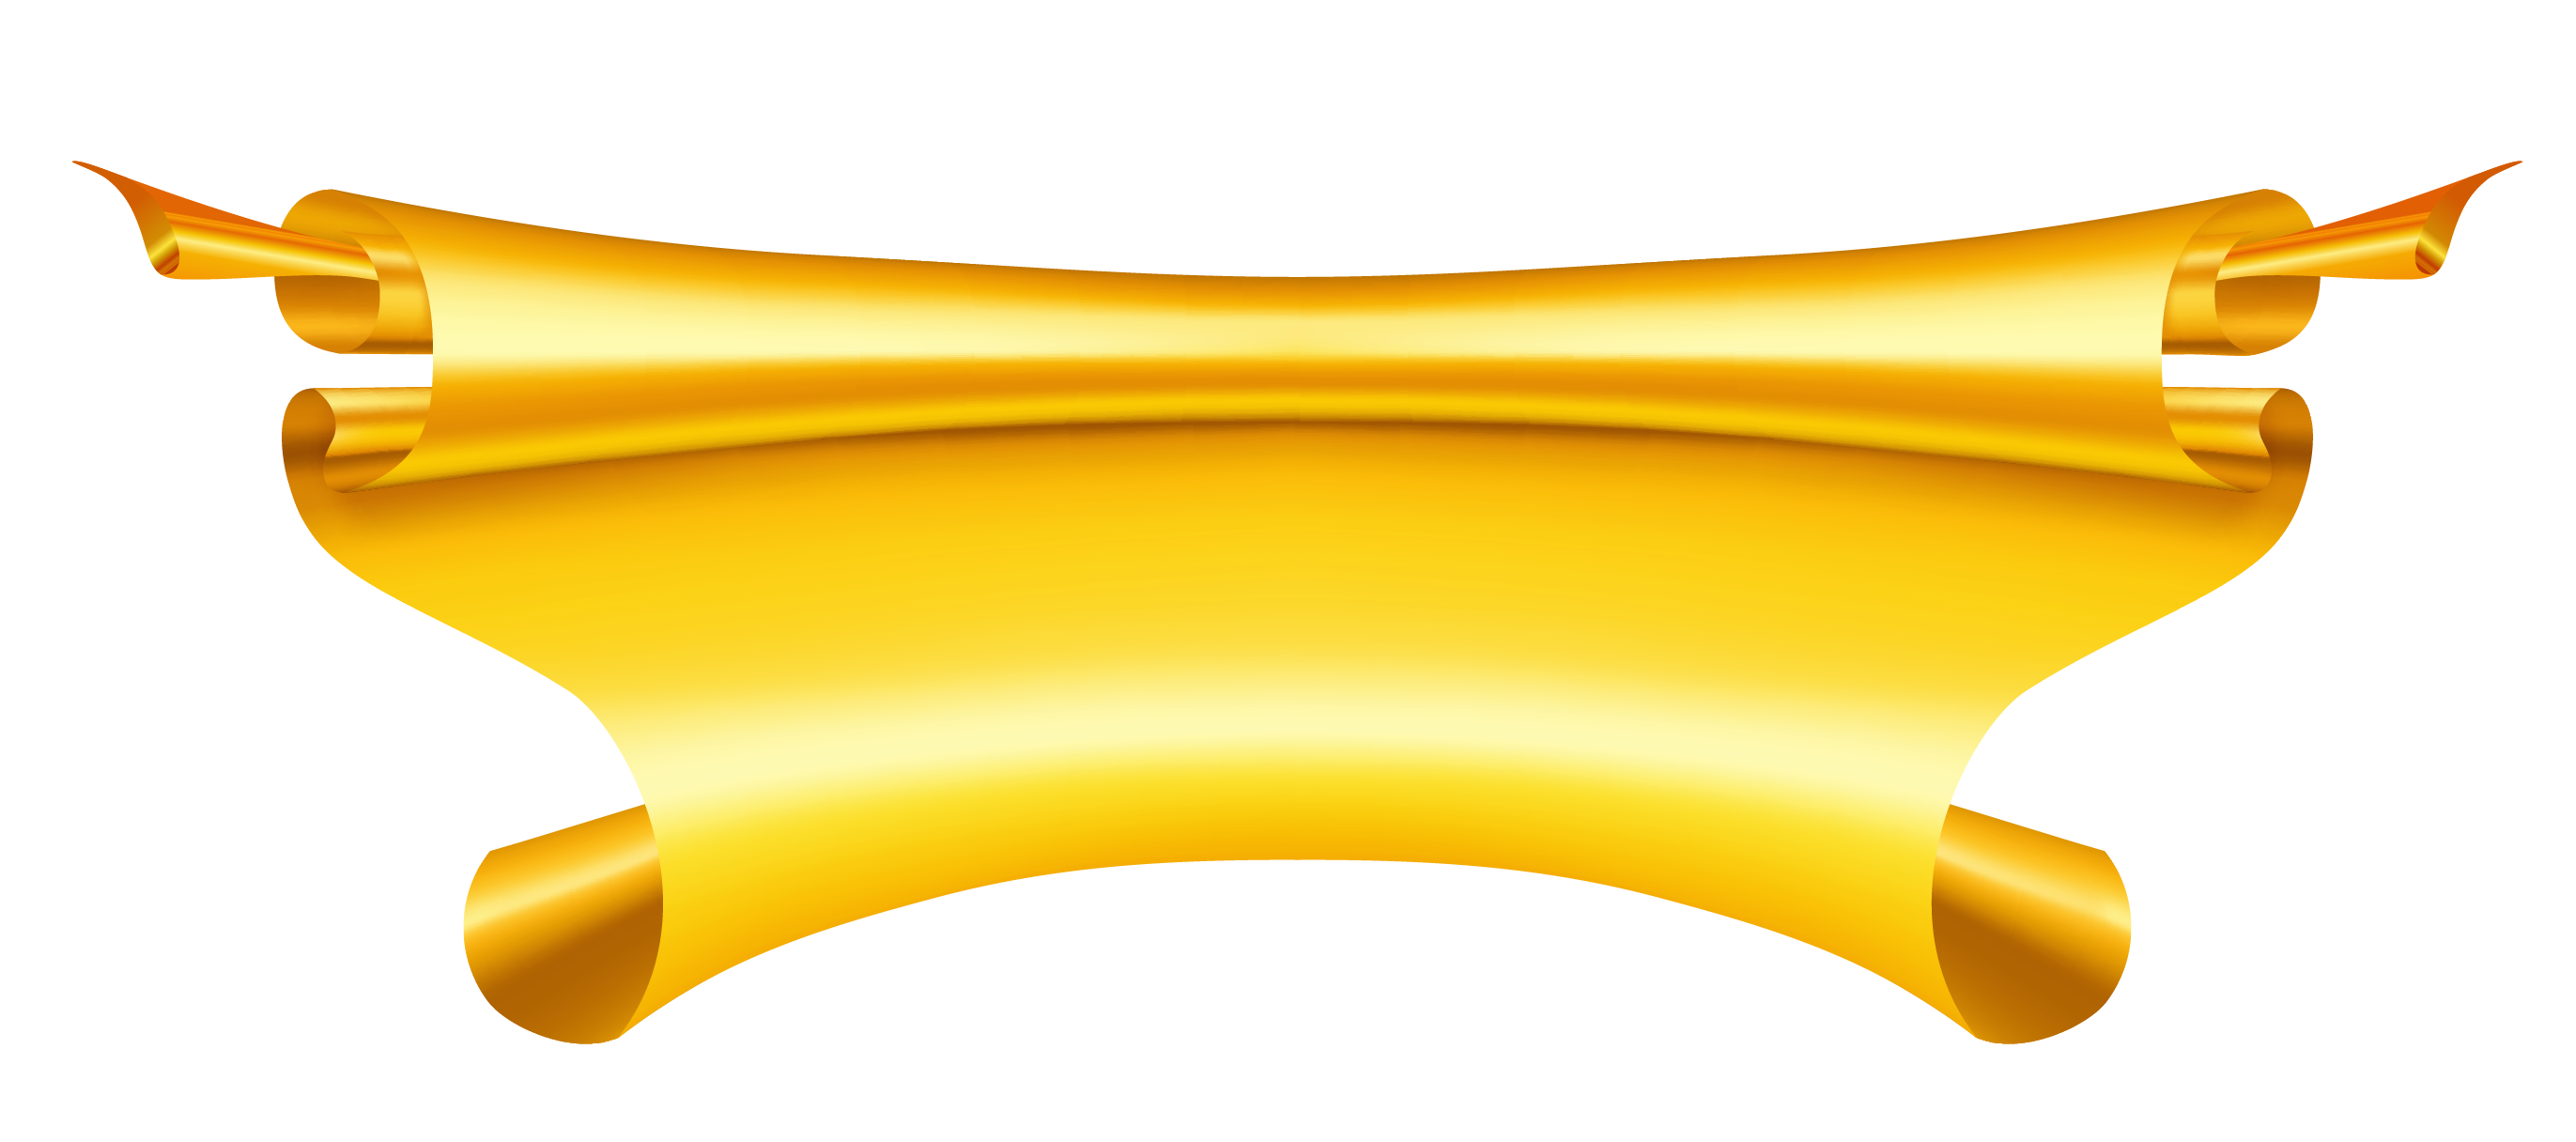 2743x1216 Yellow Golden Ribbon Banner Clipart Places To Visit